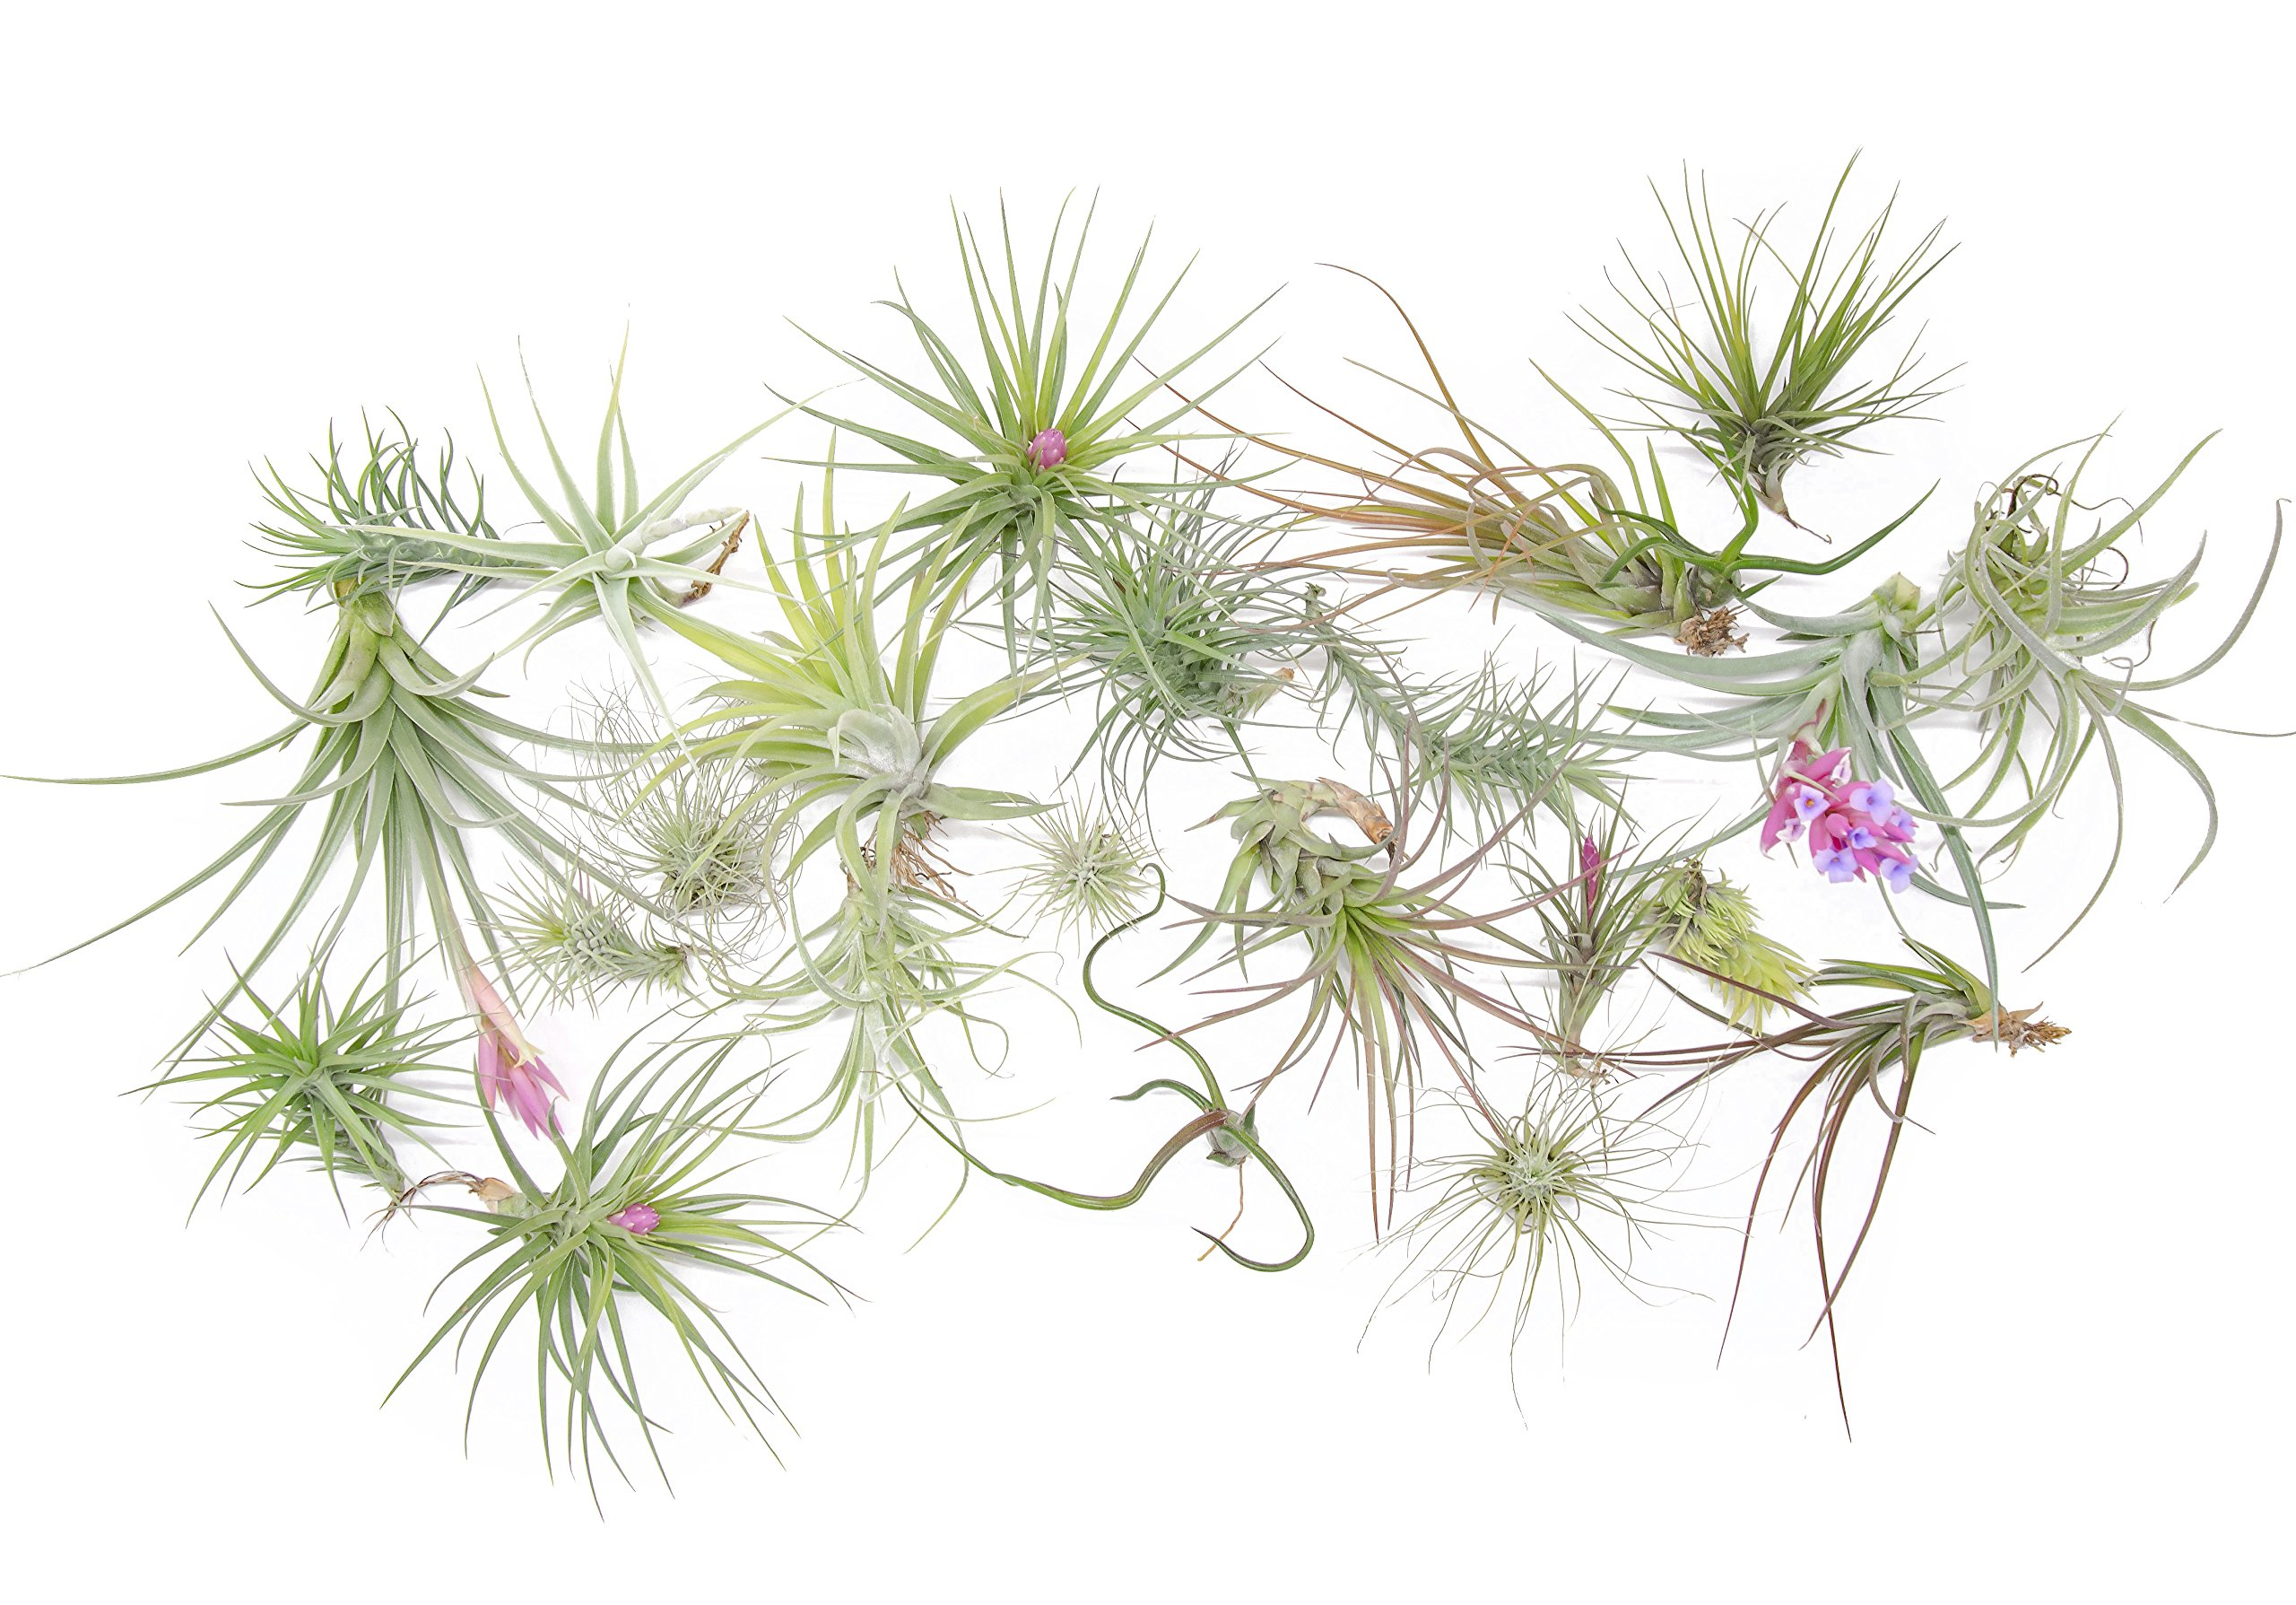 24 Air Plant Variety Pack - Large Tillandsia Terrarium Kit with Spray Bottle Mister for Water/Fertilizer - Assorted Species of Live Tillandsias, 4 to 10 Inch Indoor House Plants by Aquatic Arts